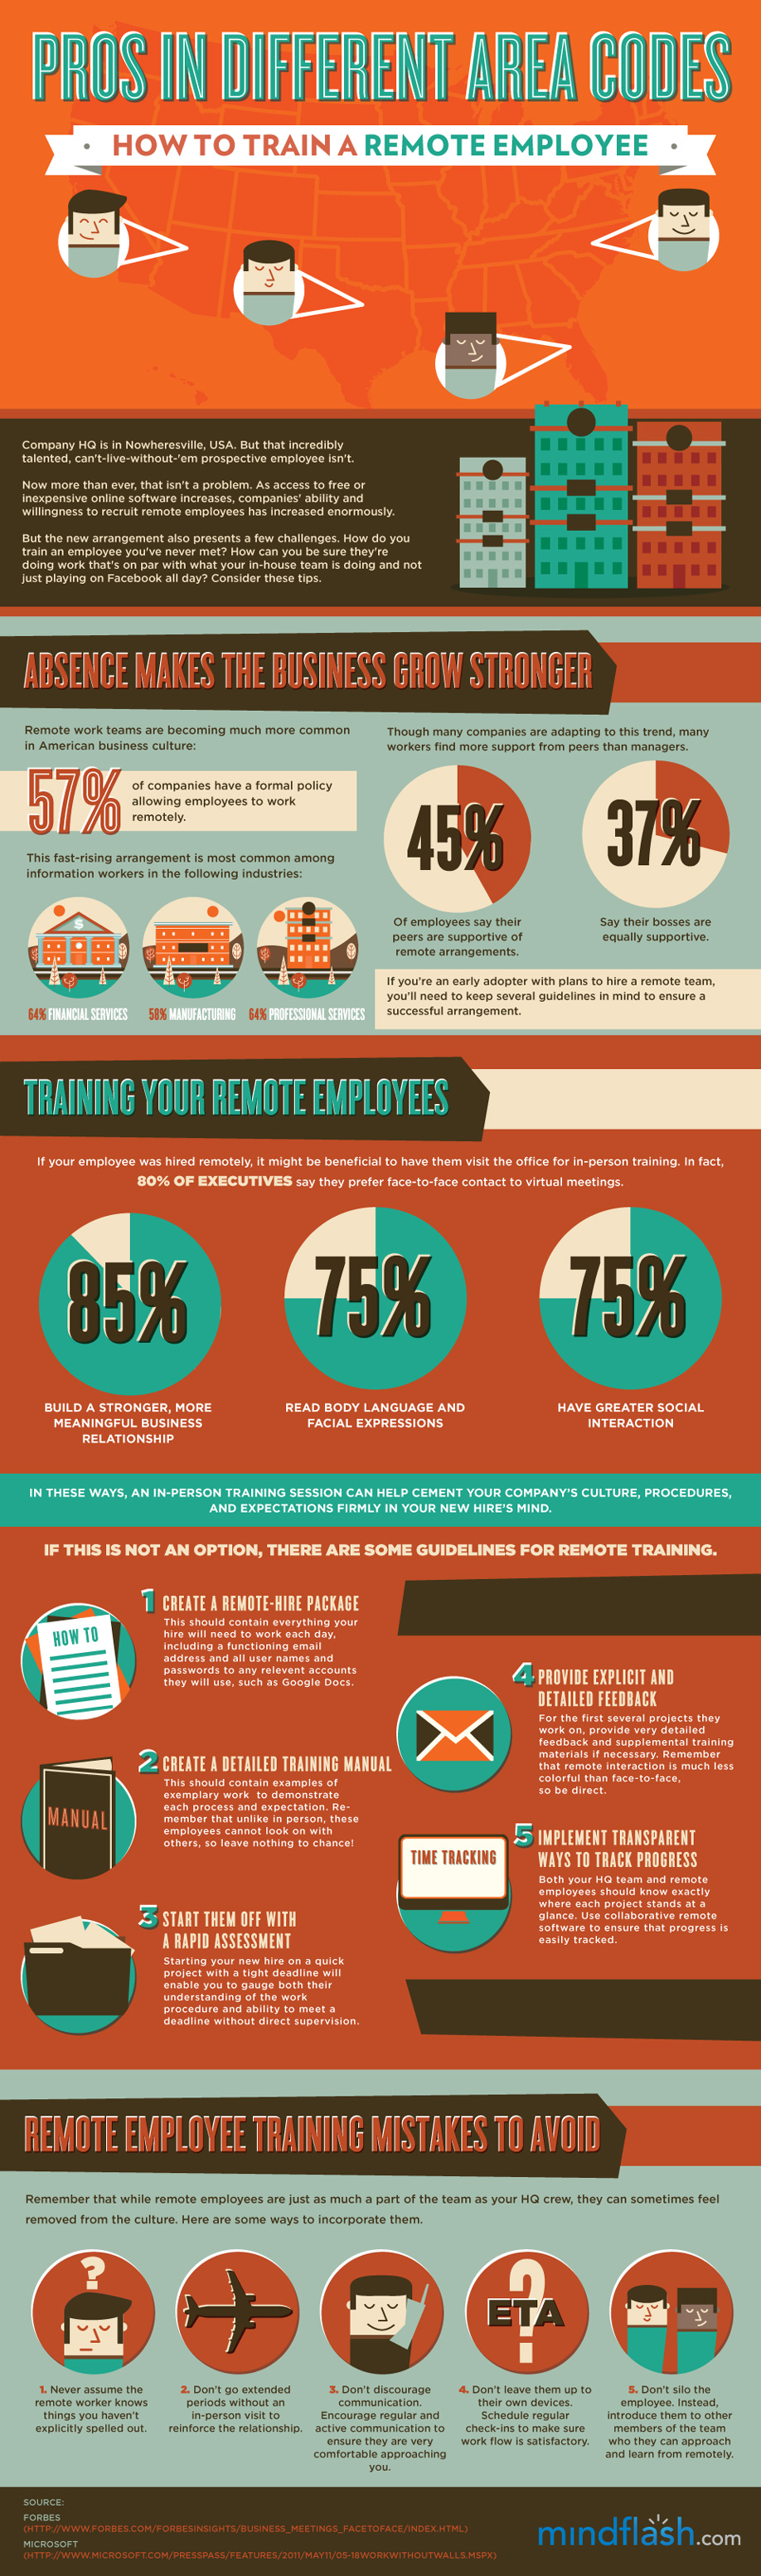 Pros In Different Area Codes: How to Train a Remote Employee